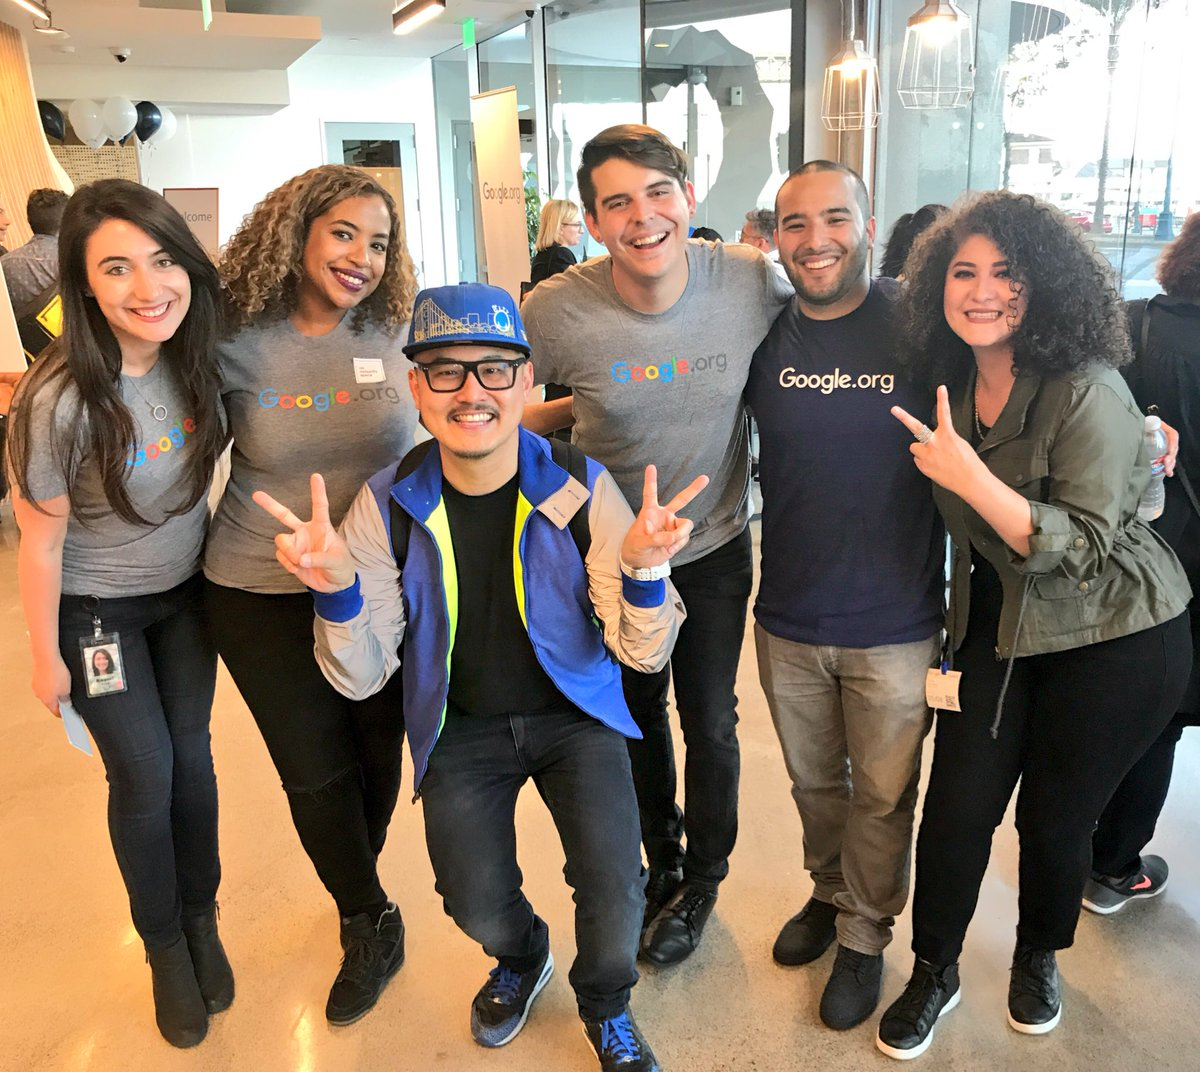 Best team in the house! @Googleorg #GoogleCommunitySpace @shaun_tai @OaklandDigital @bridgegood